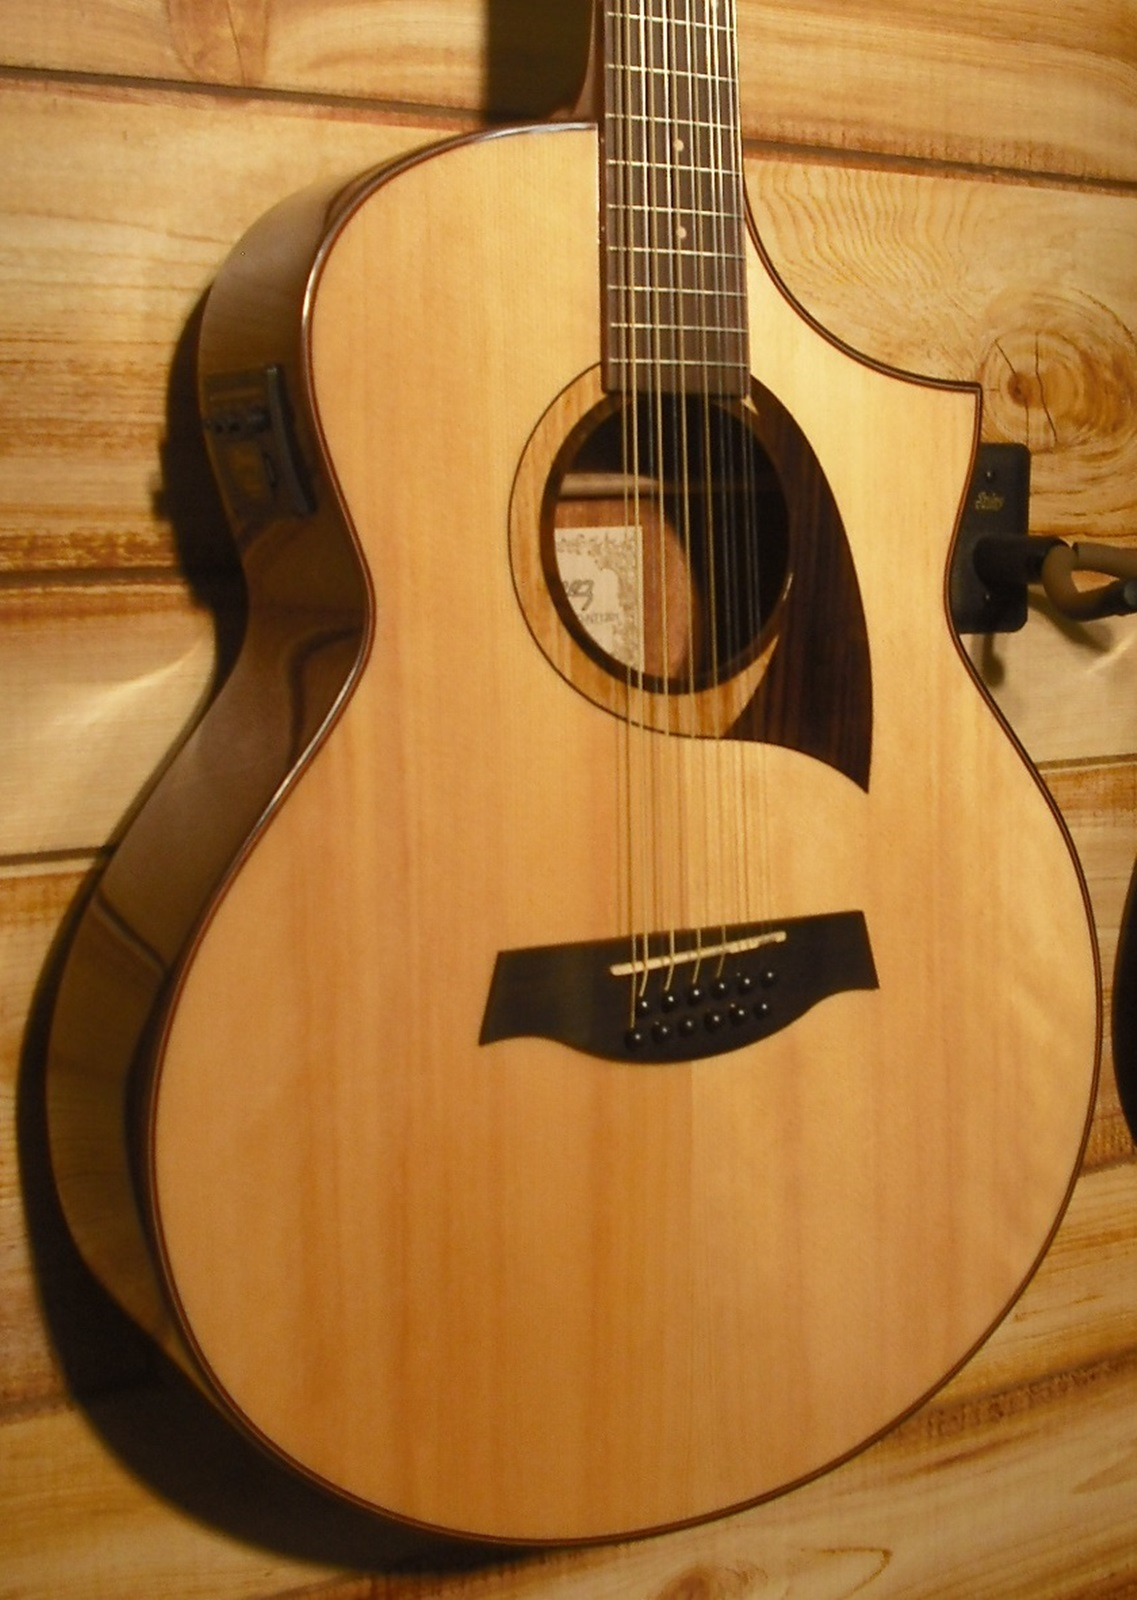 Ibanez AEW2212CD 12 String Acoustic Electric Guitar Natural High Gloss